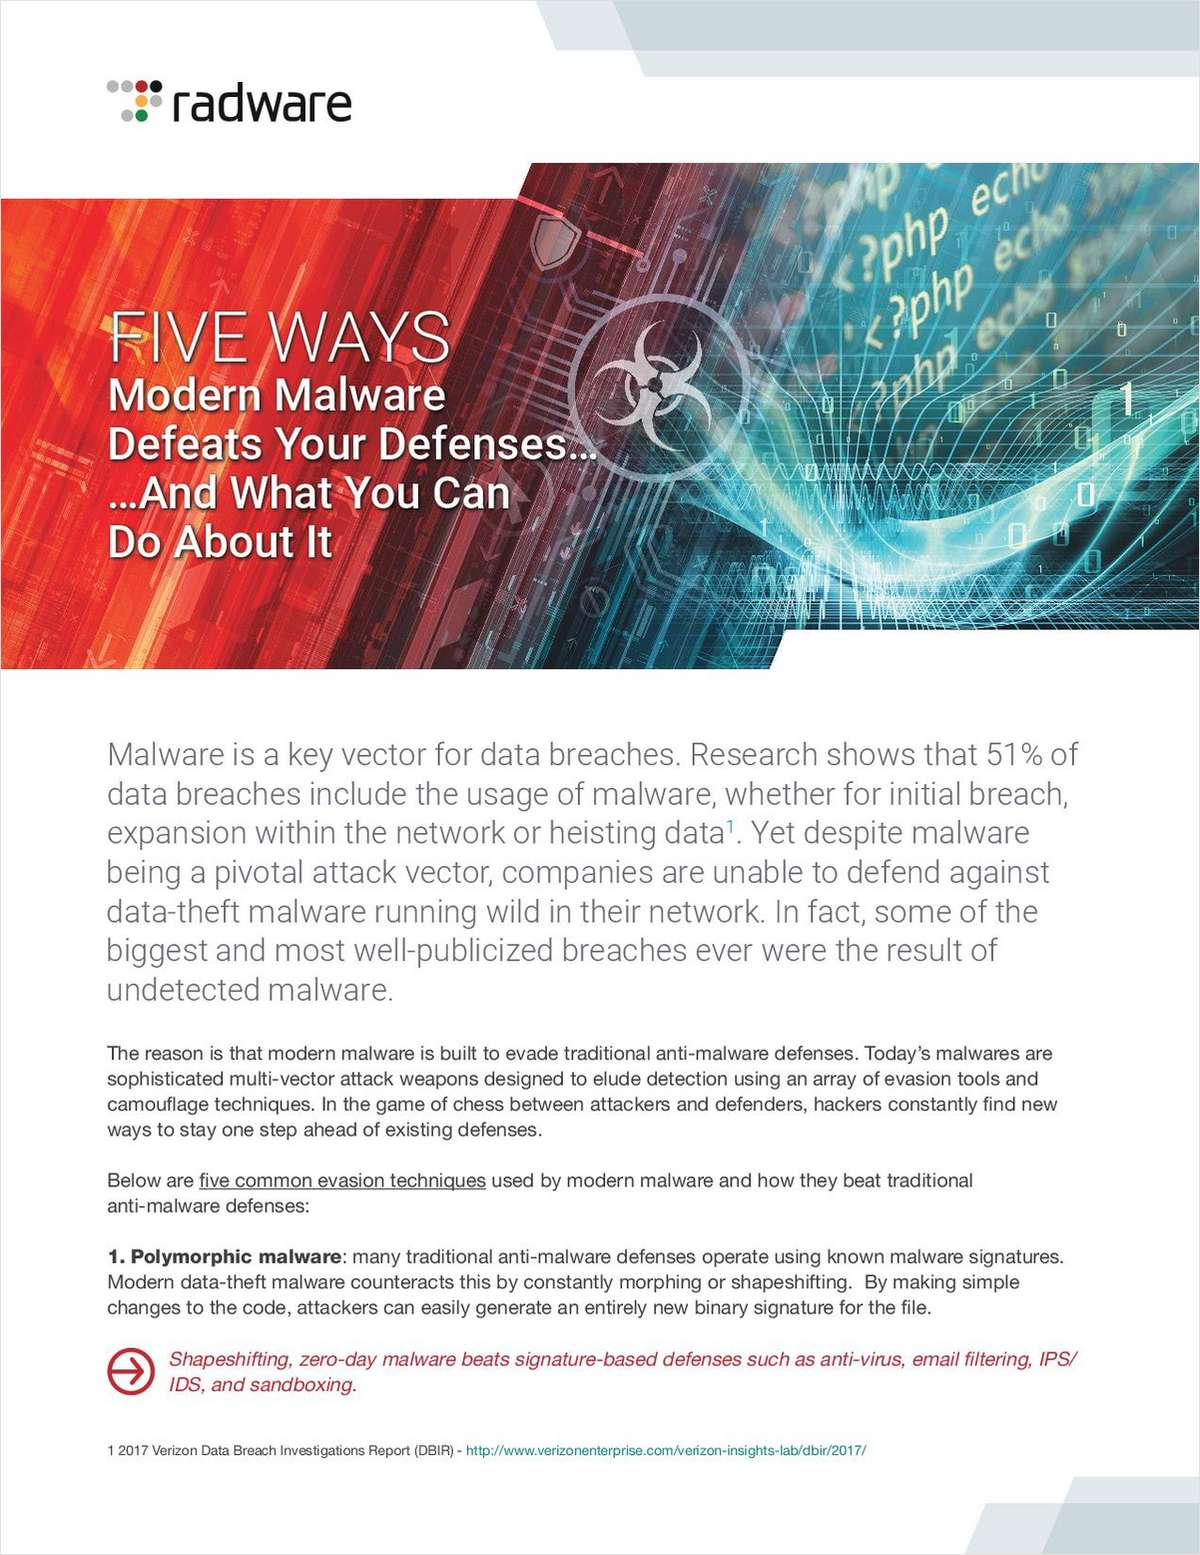 Five Ways Modern Malware Defeats Your Defenses...And What You Can Do About It